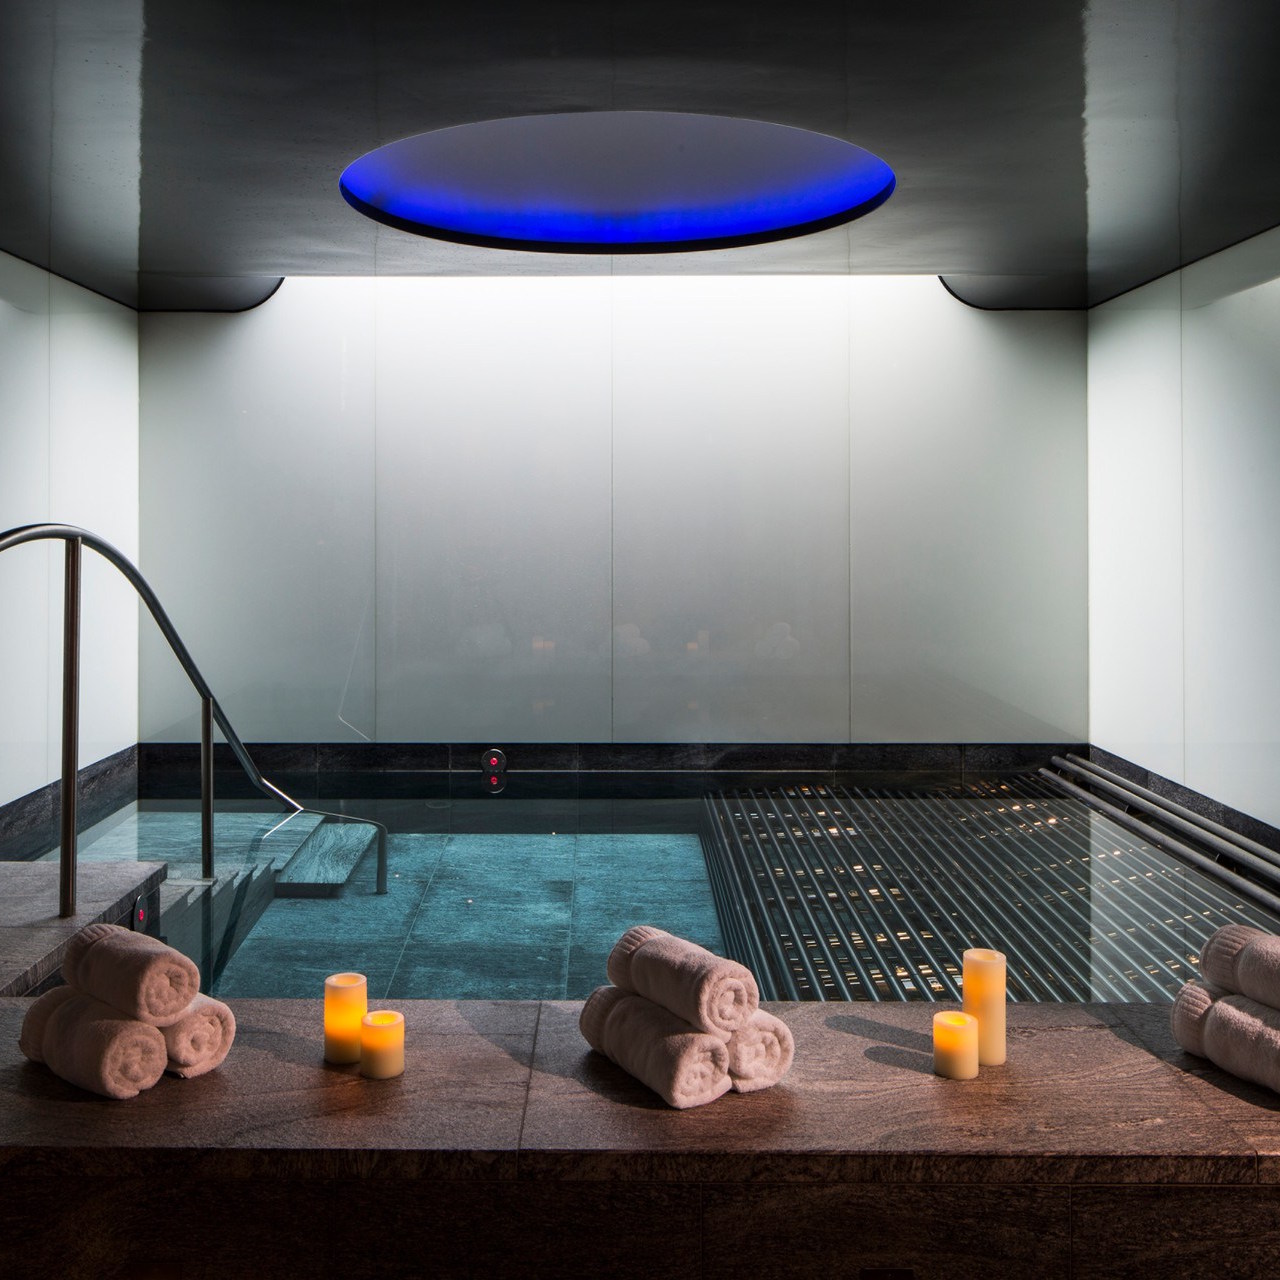 Four Seasons Spa, Mayfair